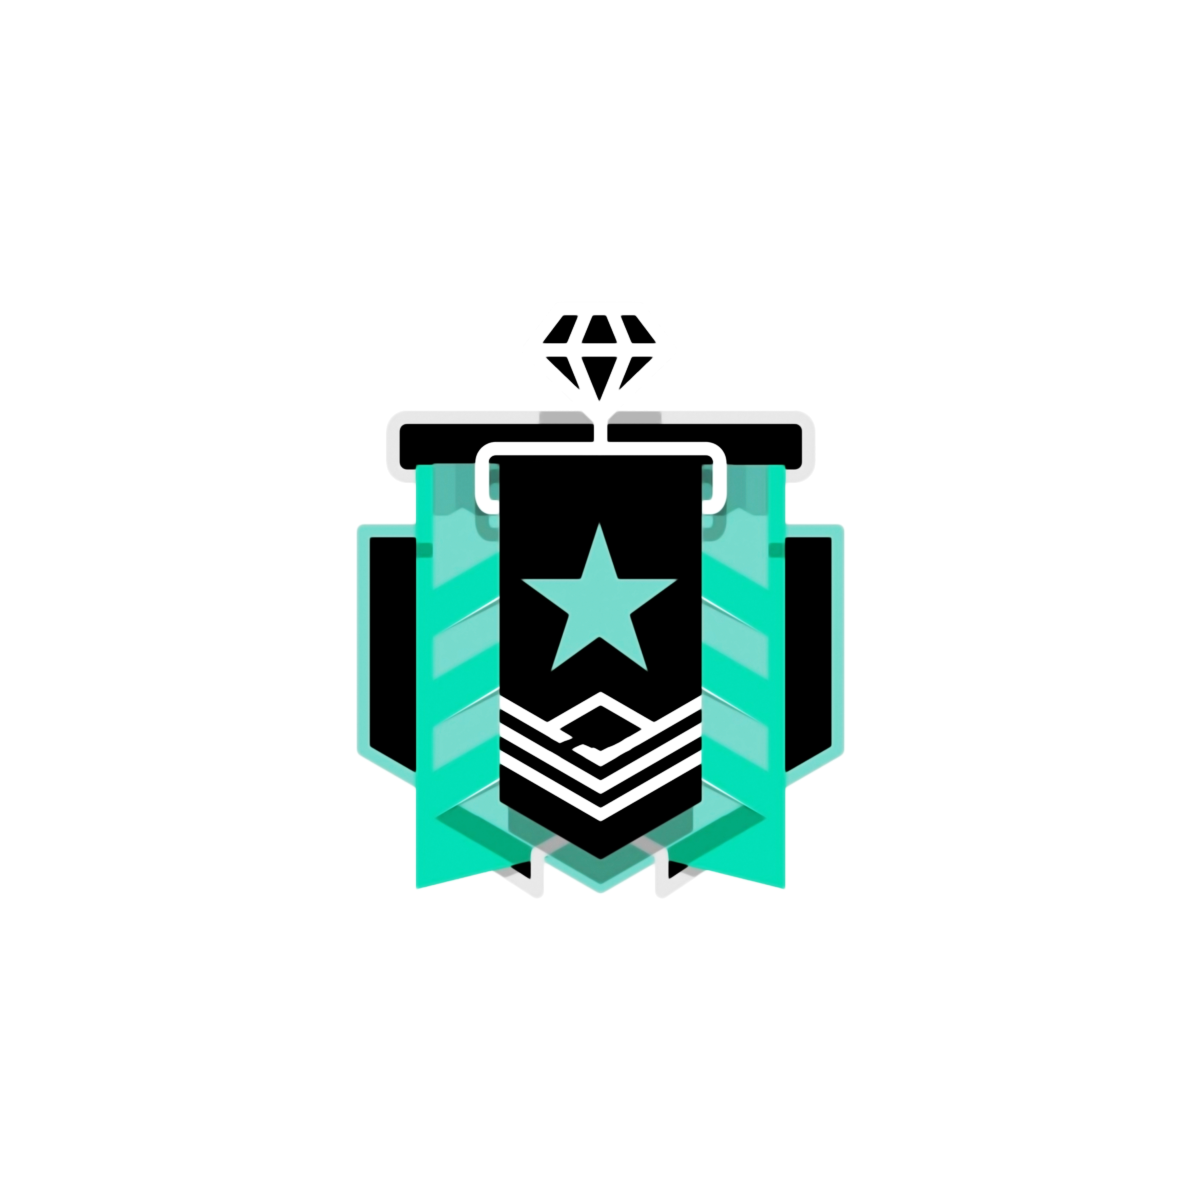 Rainbow Six Siege (Diamond Rank Logo)